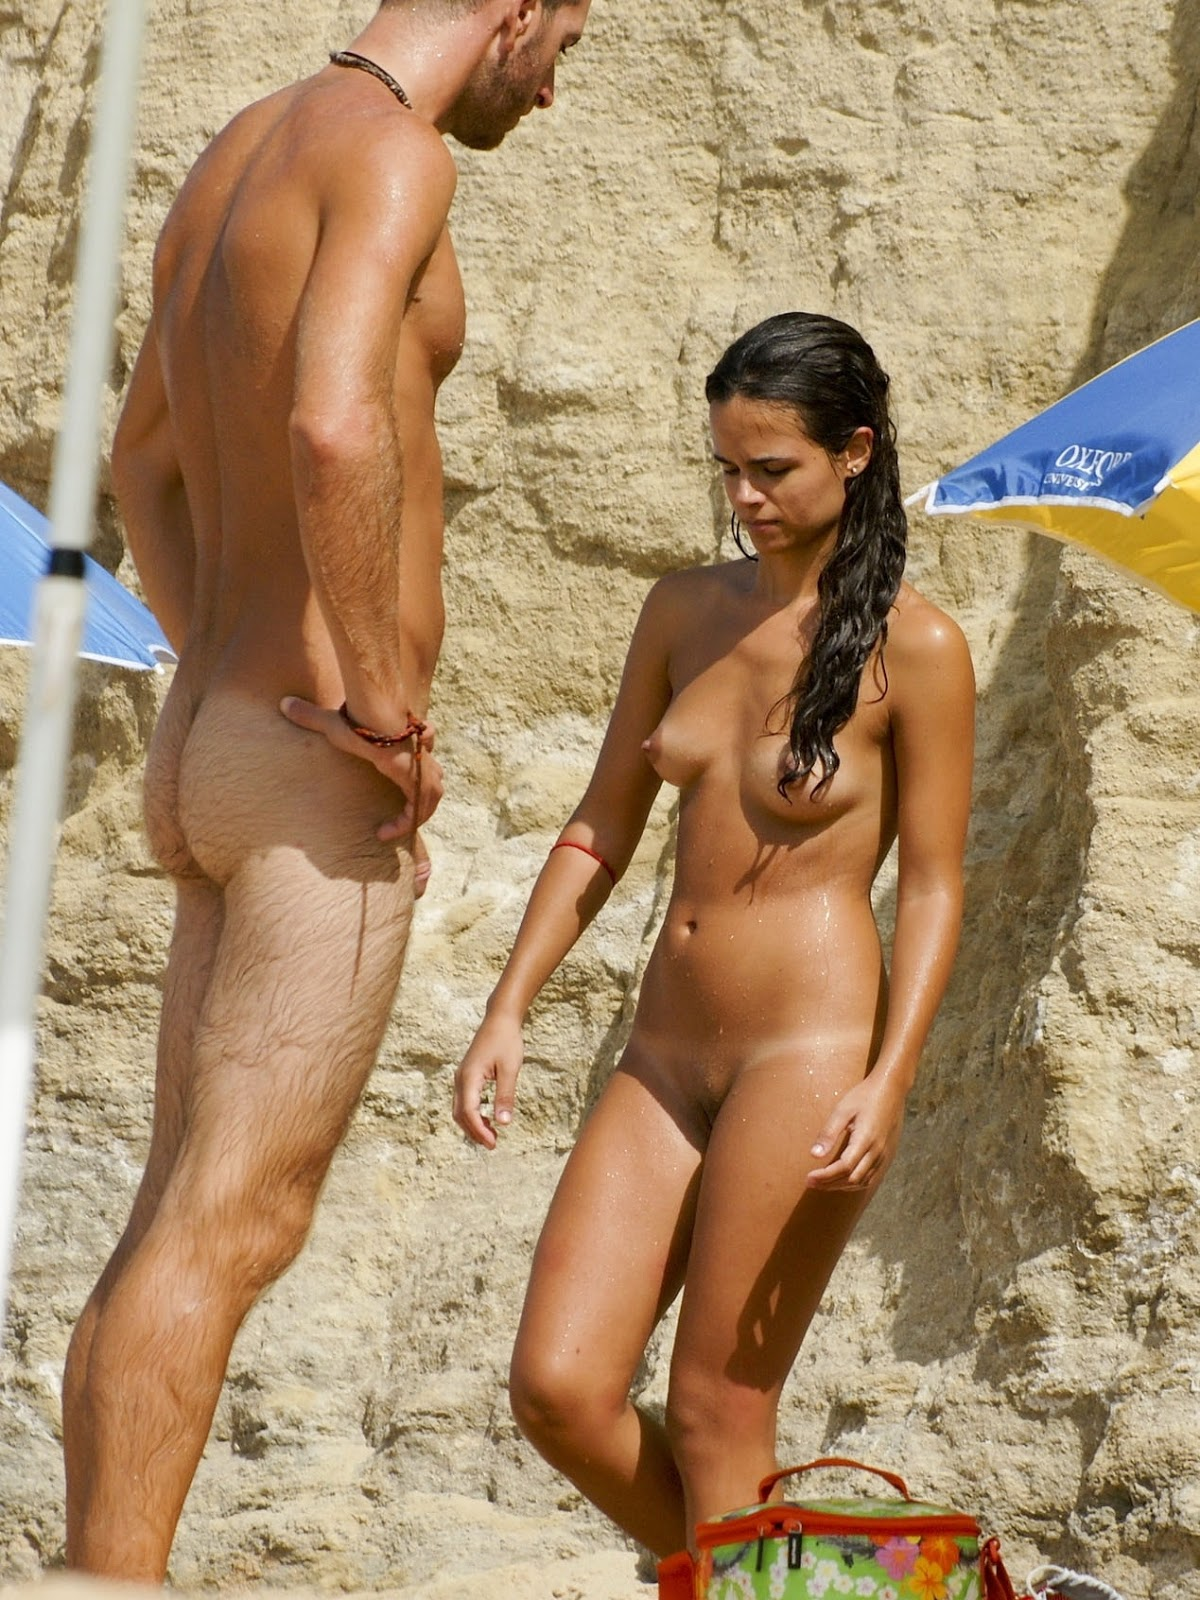 Nudism - Photo - Hq  Nudists - Couple - Nude Beach-7774